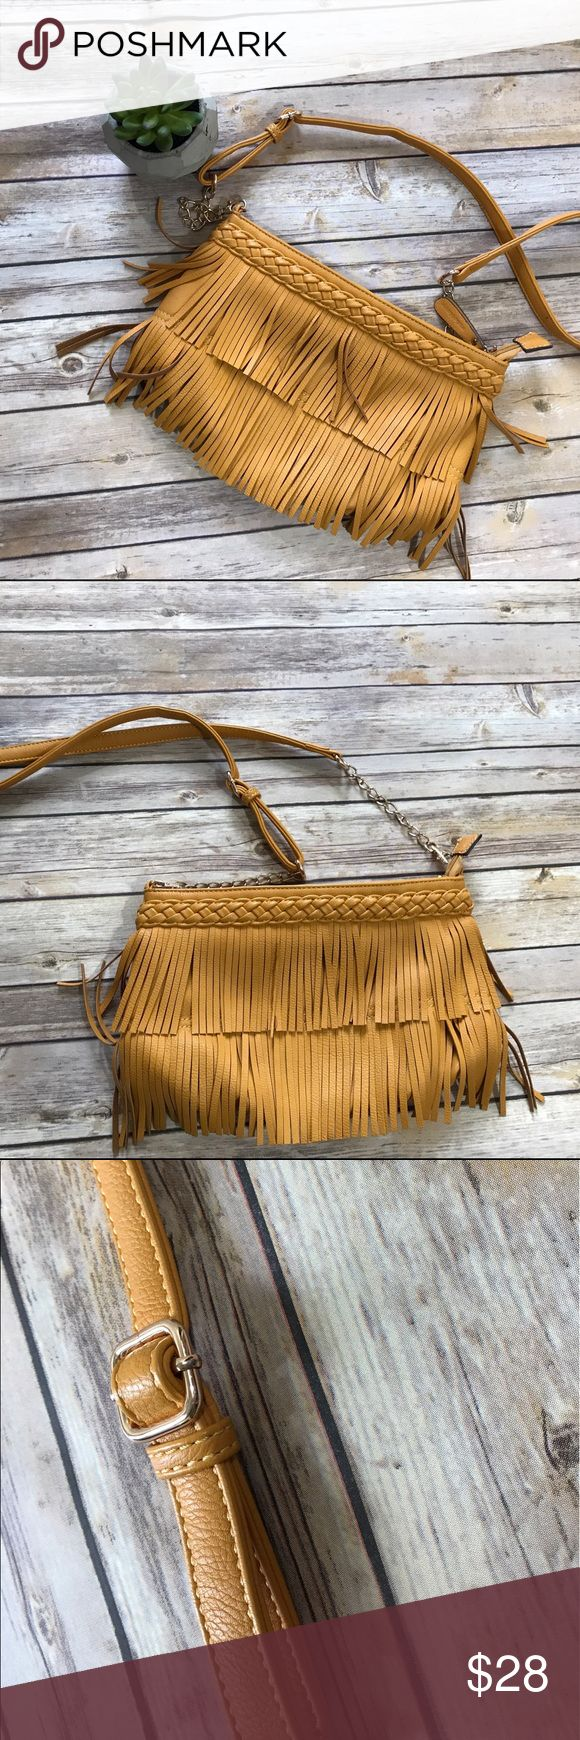 """Melie Bianco mustard yellow fringe Crossbody bag Cruelty free vegan leather. Strap length 23"""", height 7"""", width 12"""". Small stain/ wear on back (see last photo) Melie Bianco Bags Crossbody Bags"""